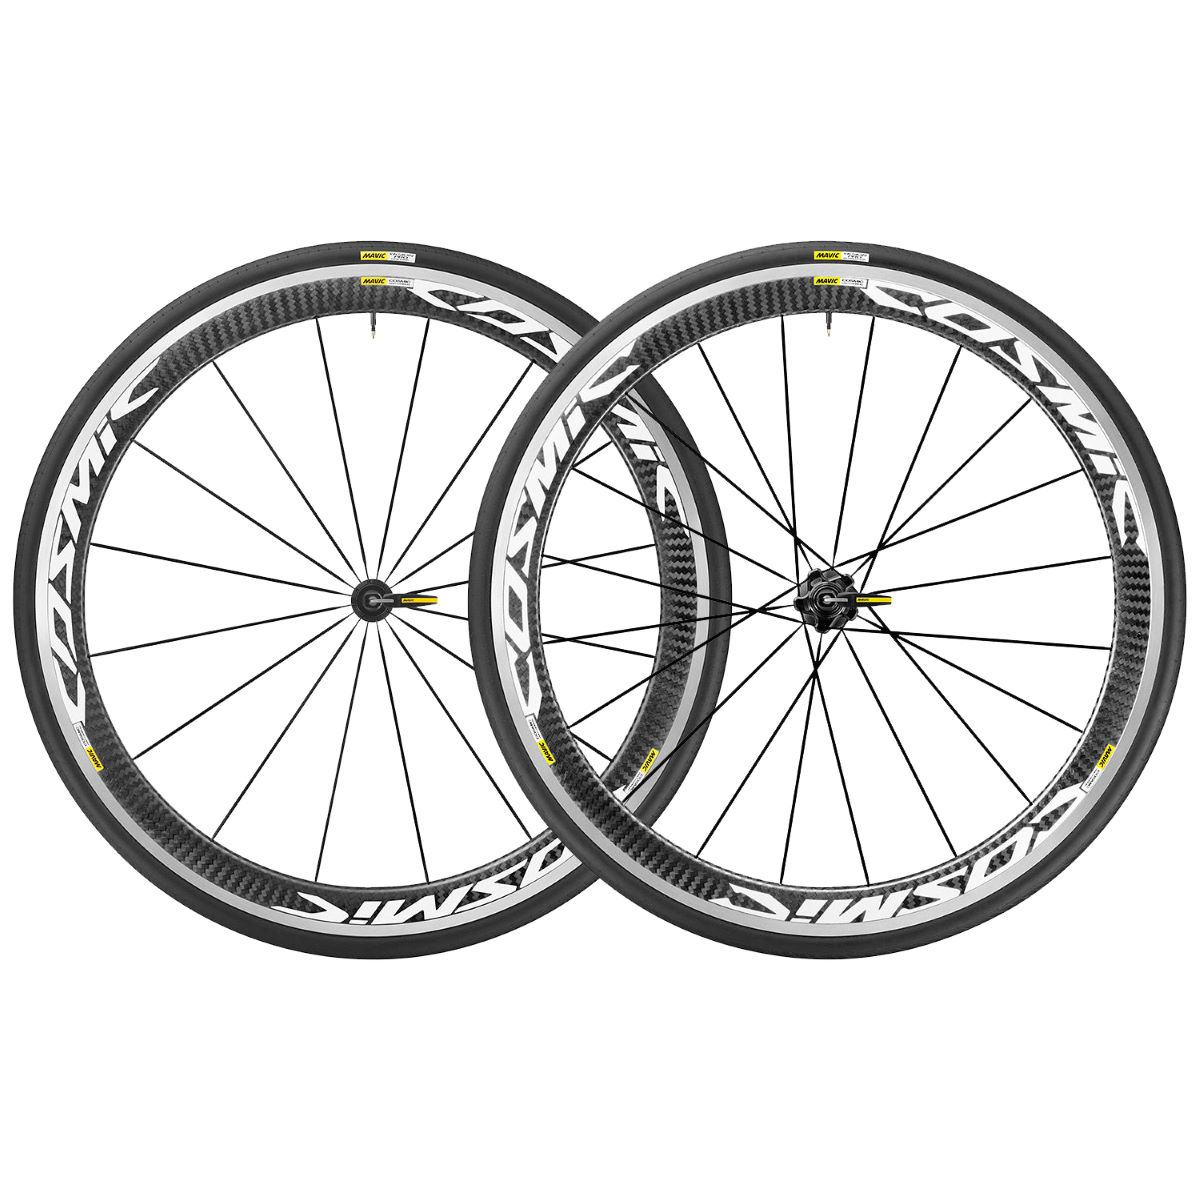 Wheel set Mavic Cosmic Pro Carbon (WTS) - Competition wheels